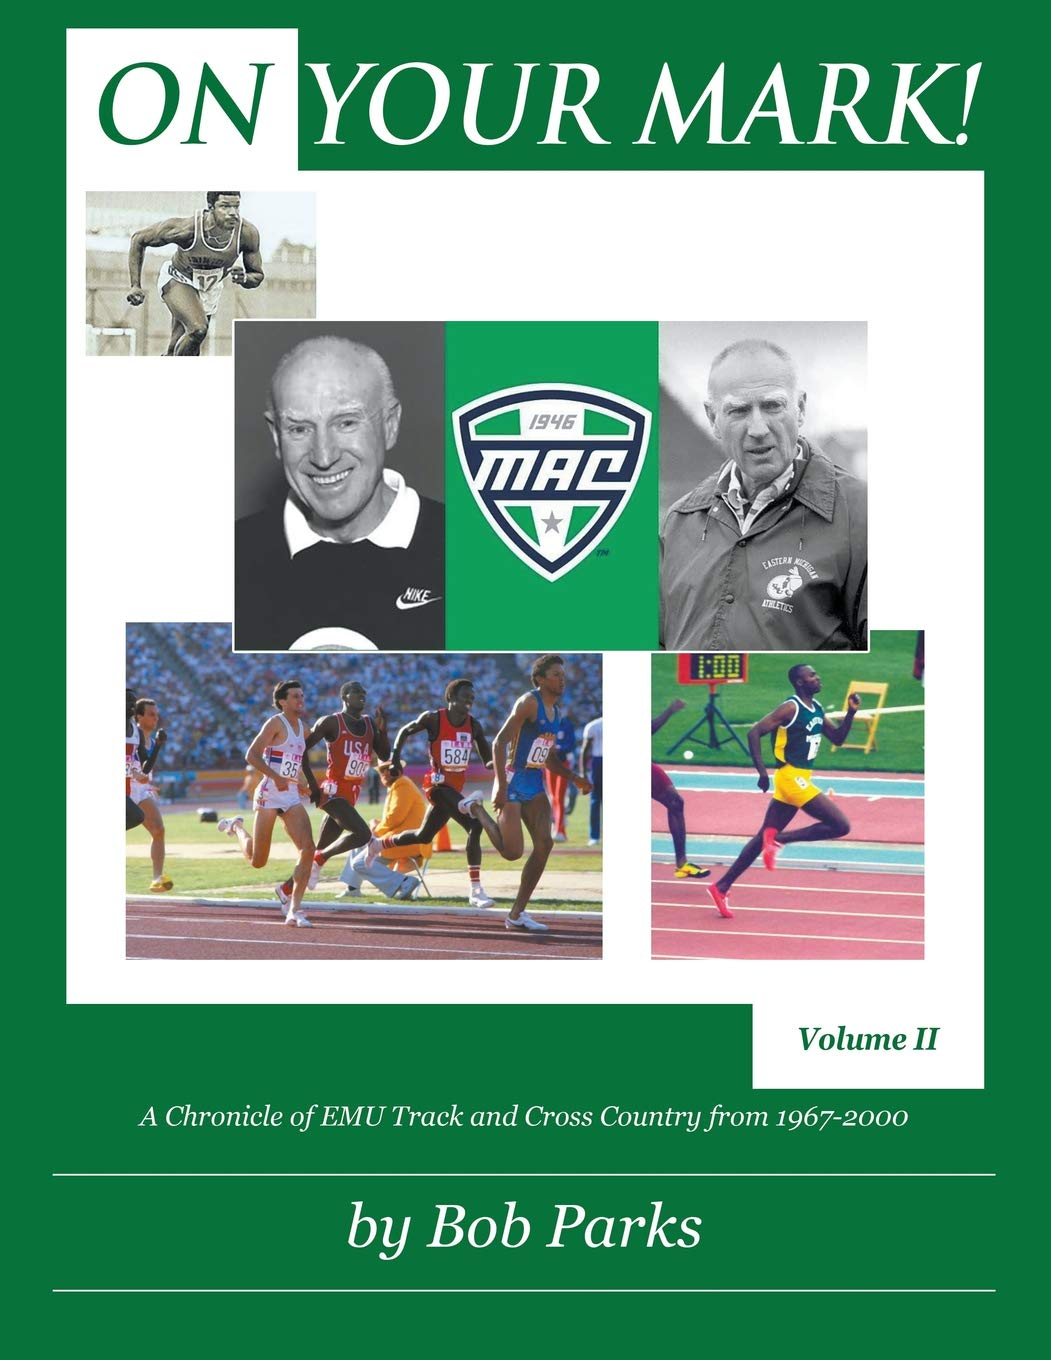 ON YOUR MARK!: A Chronicle of EMU Track and Cross Country from 1967 to 2000 Volume II by Outskirts Press